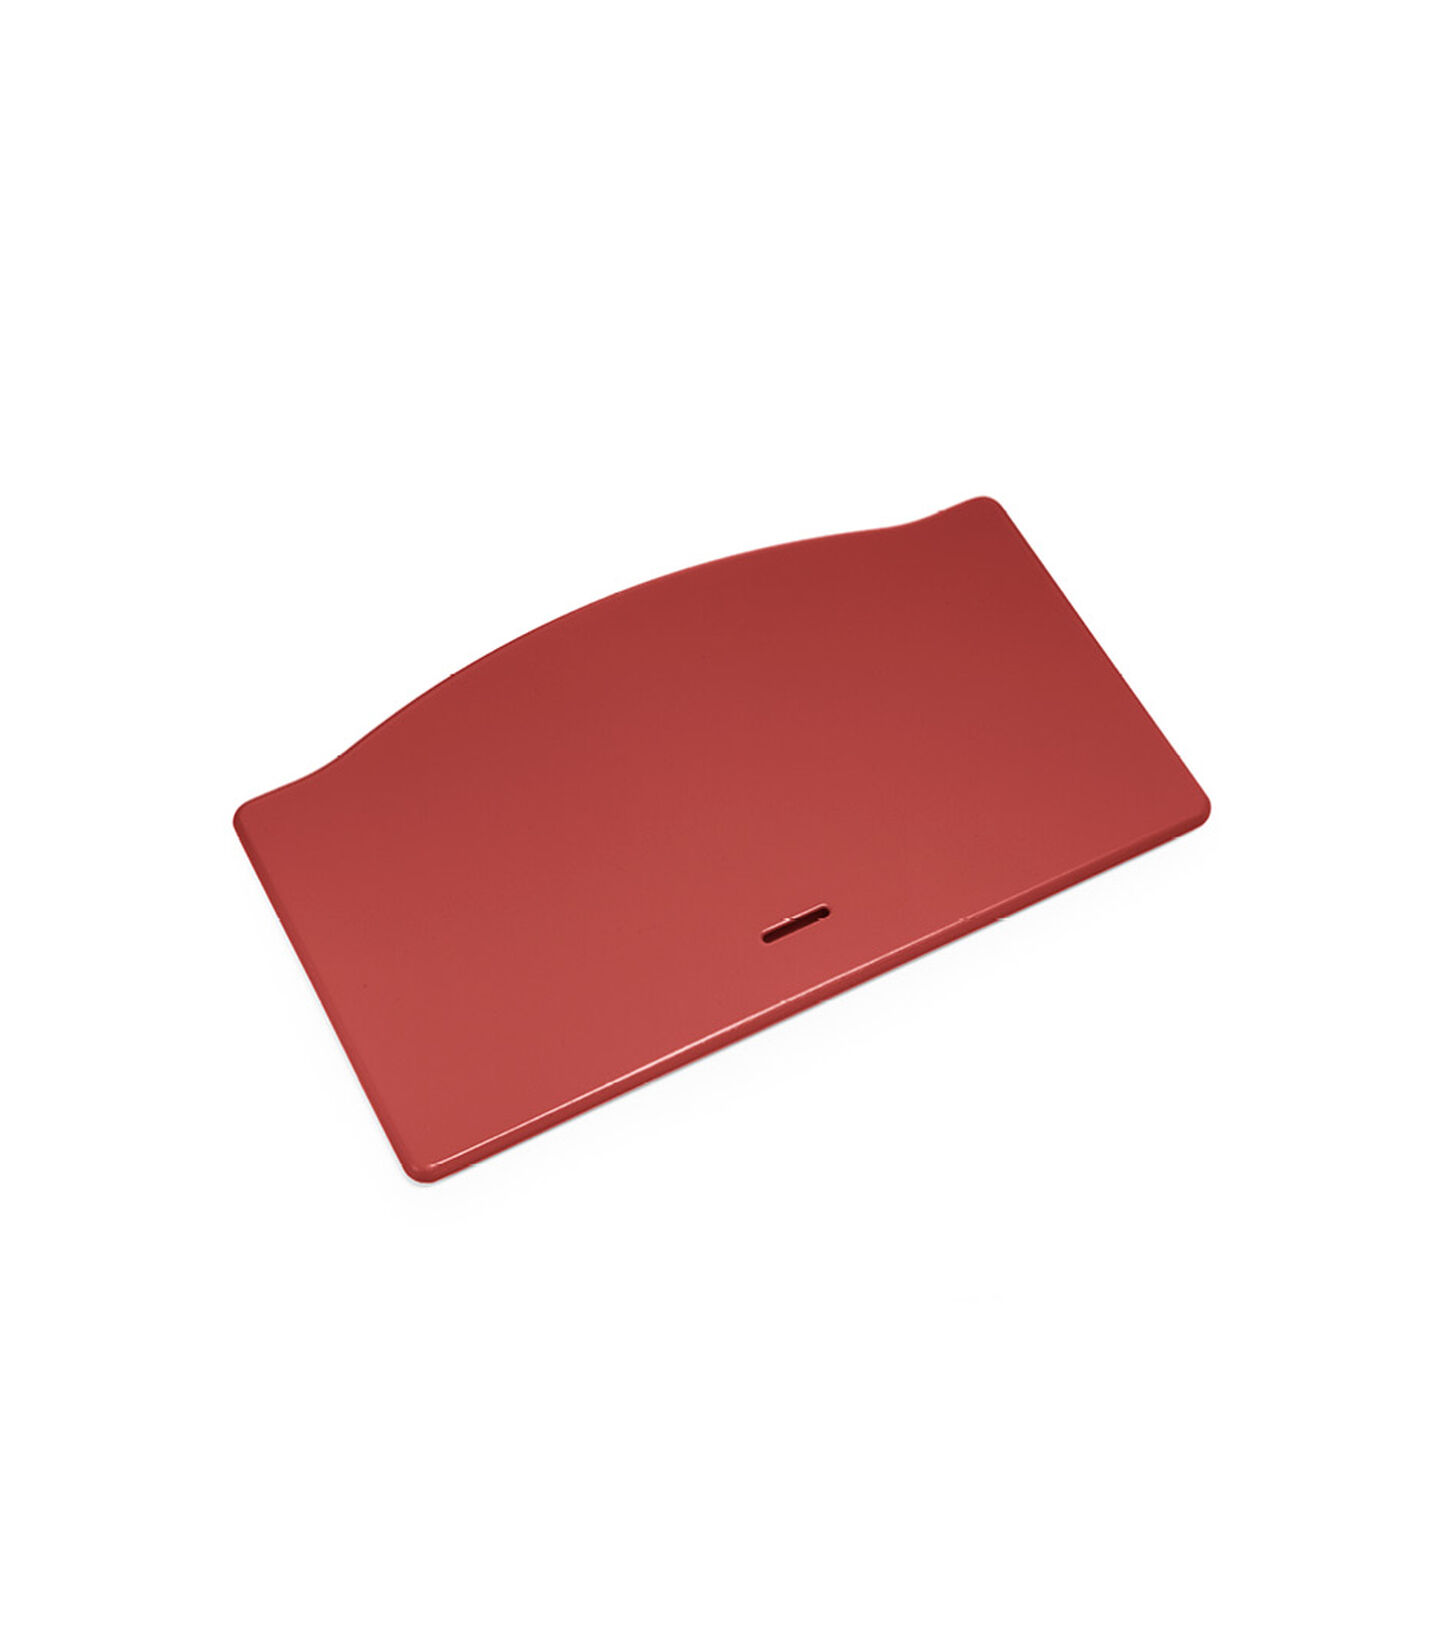 Tripp Trapp Seat plate Warm Red (Spare part). view 2